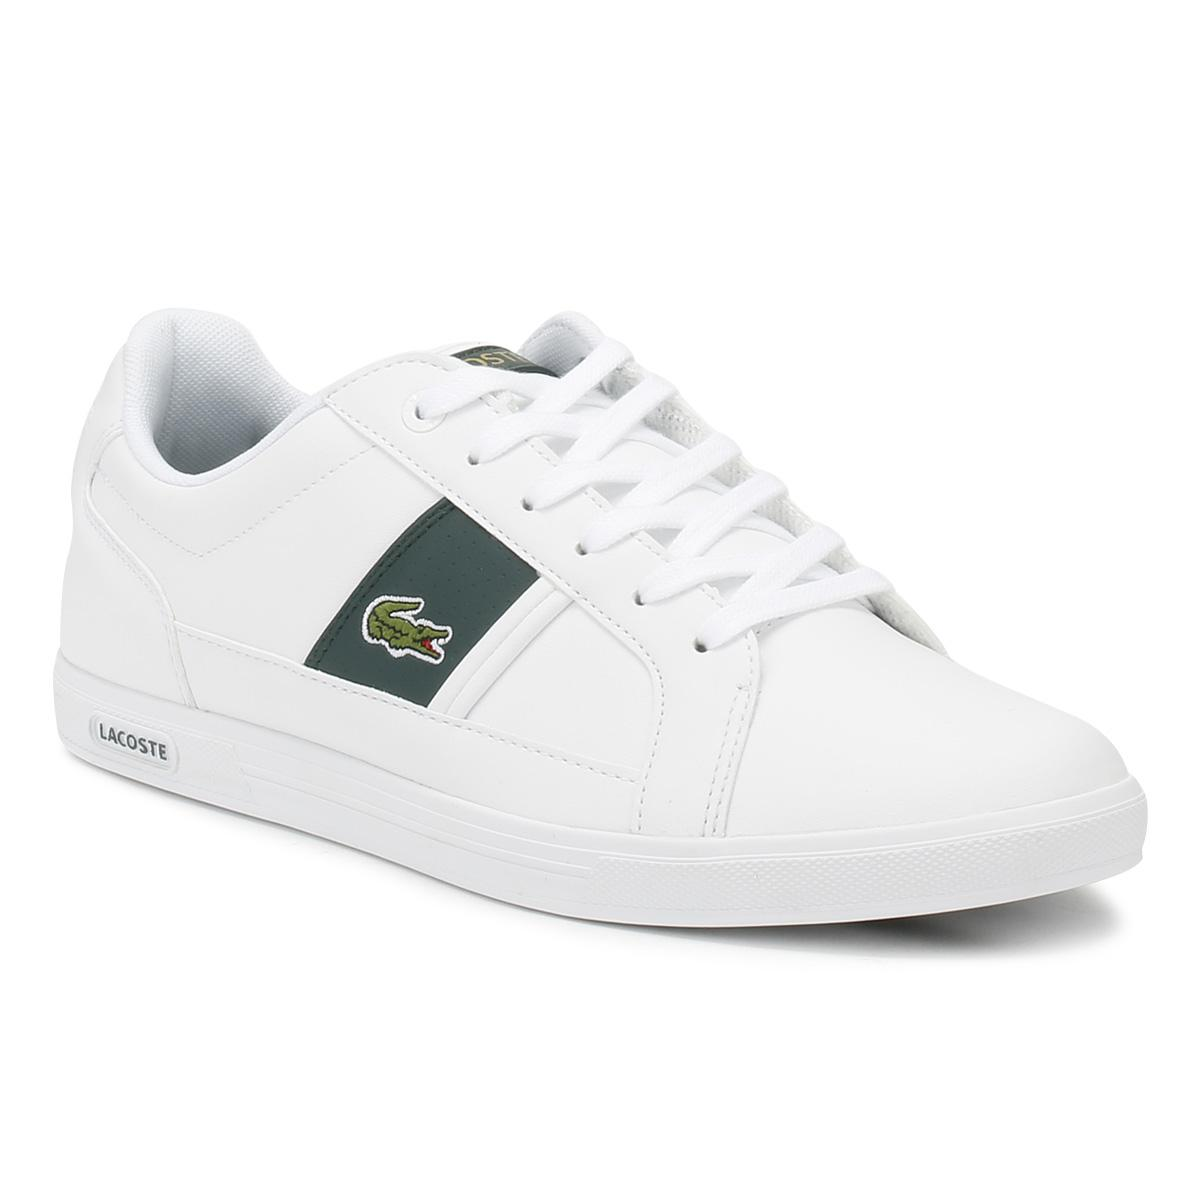 3d918dec1 Lyst - Lacoste Mens White   Dark Green Europa 118 1 Trainers in ...